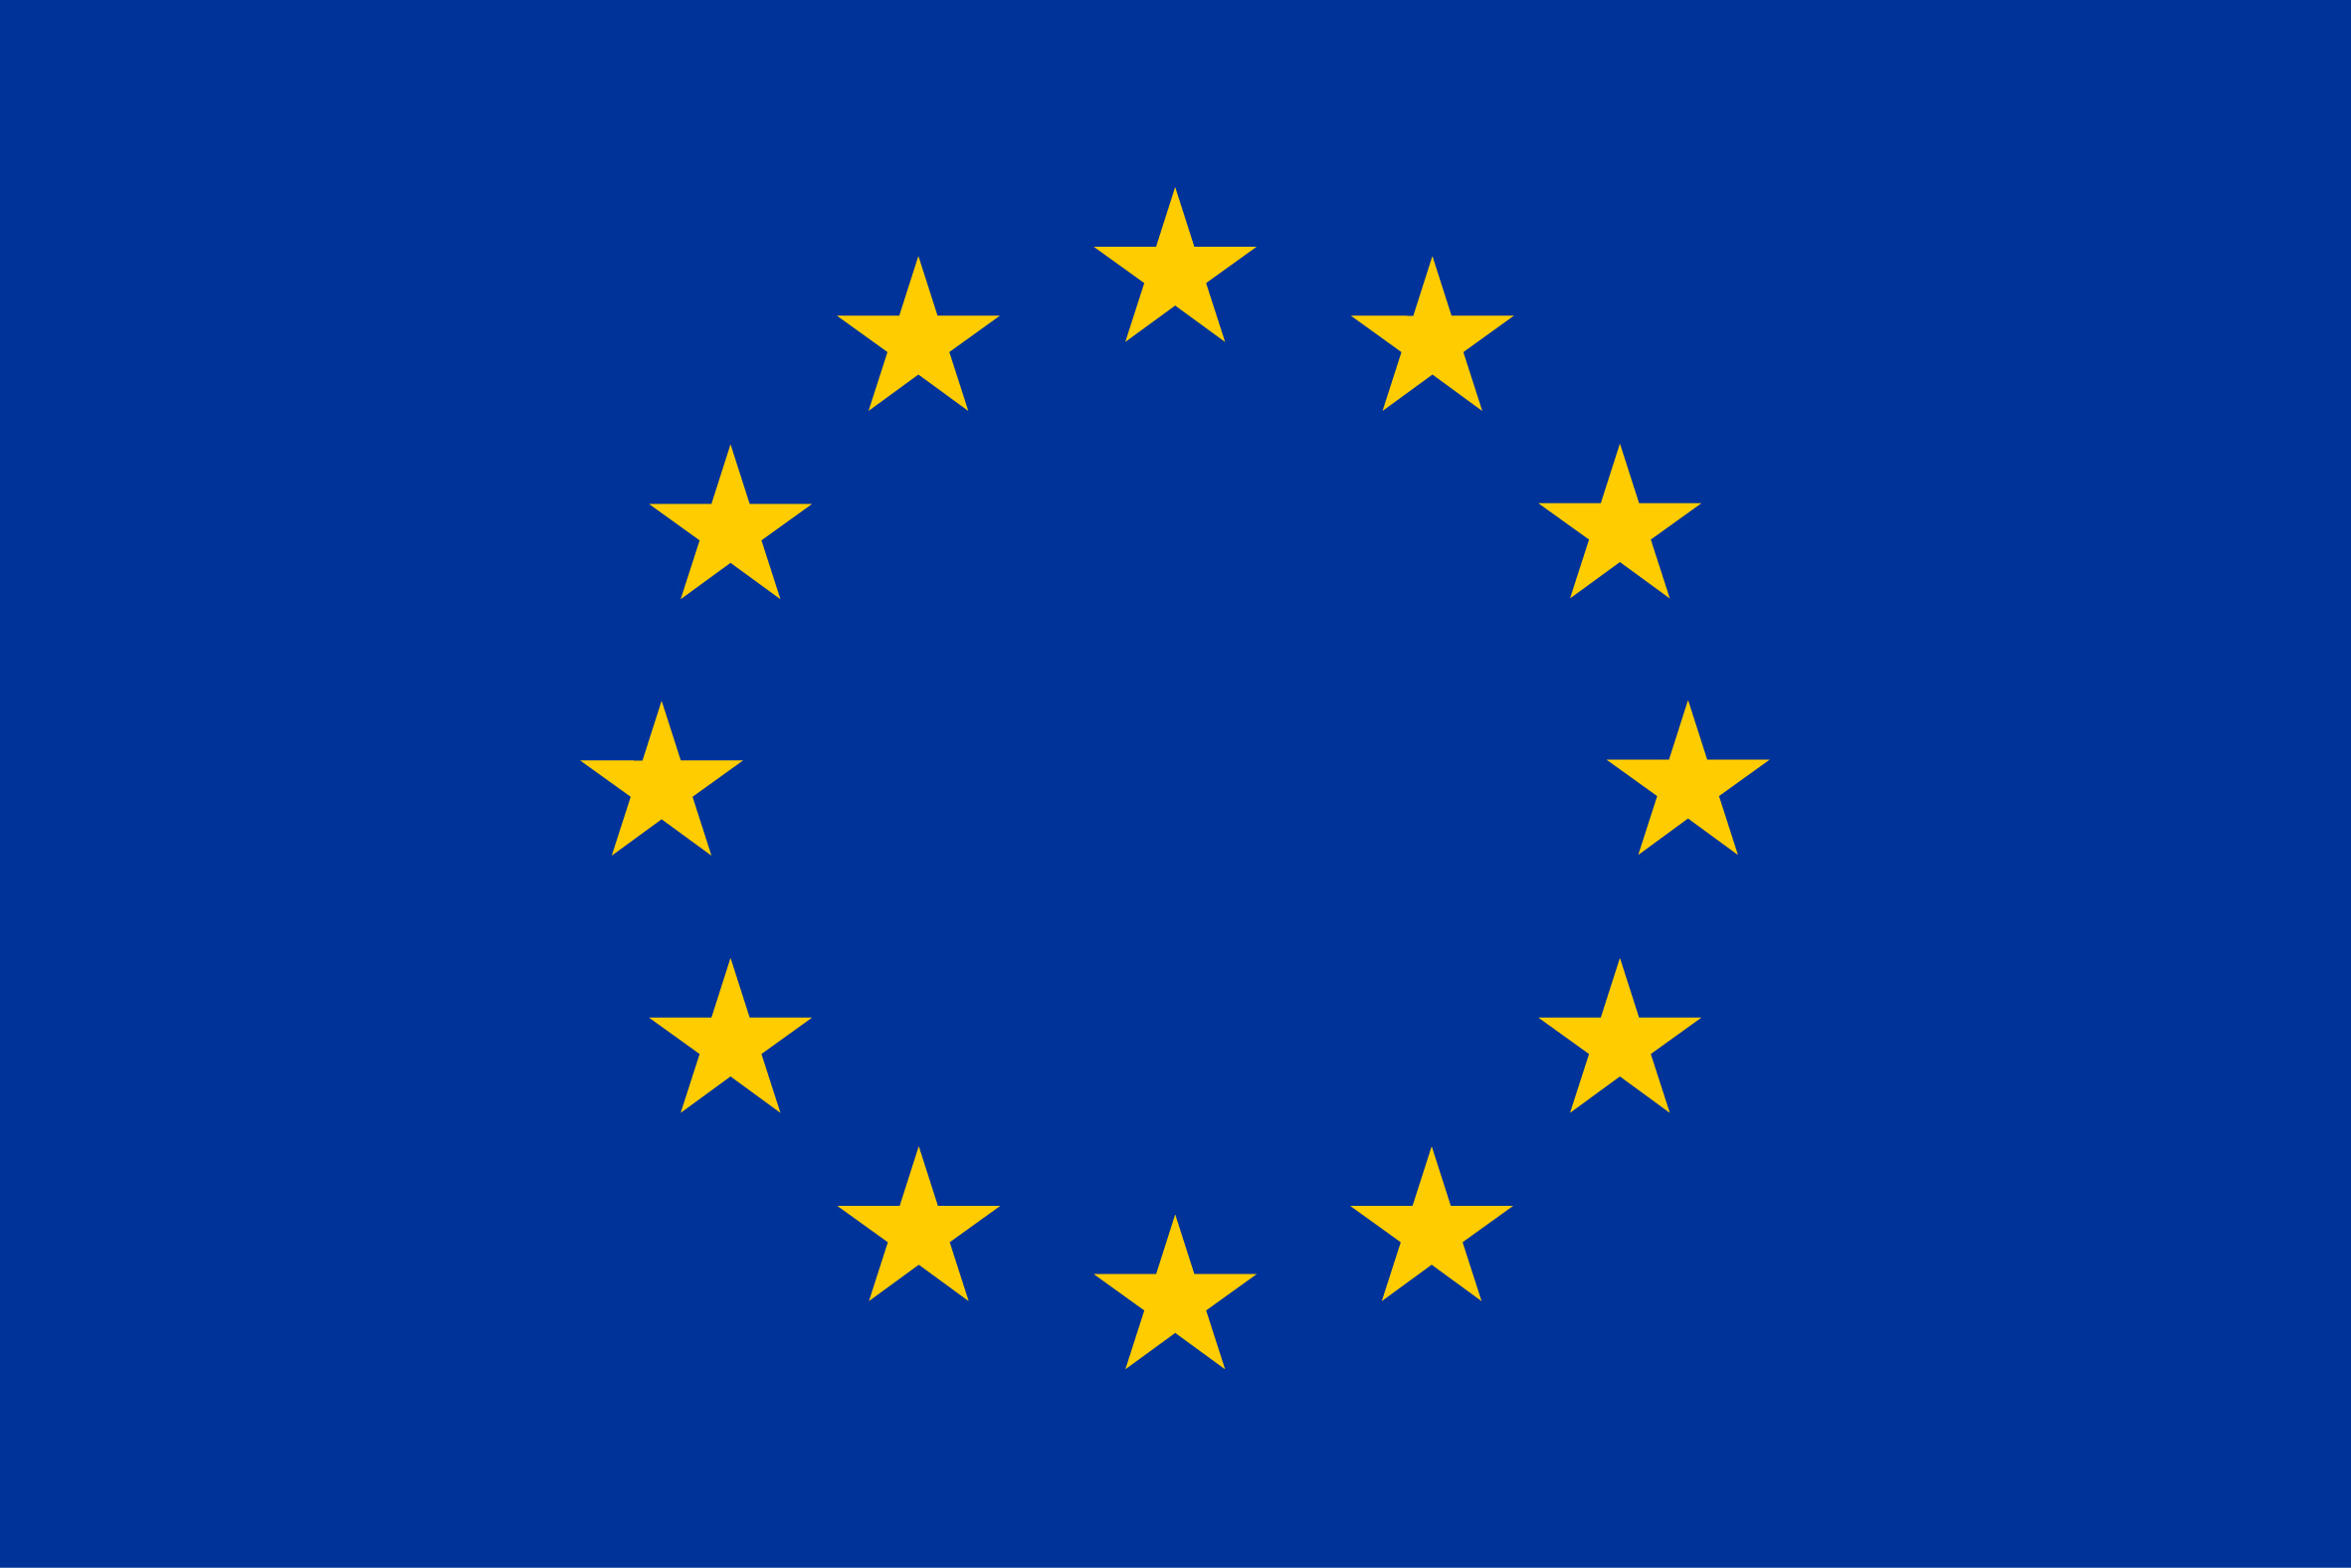 EU-flag yellow high